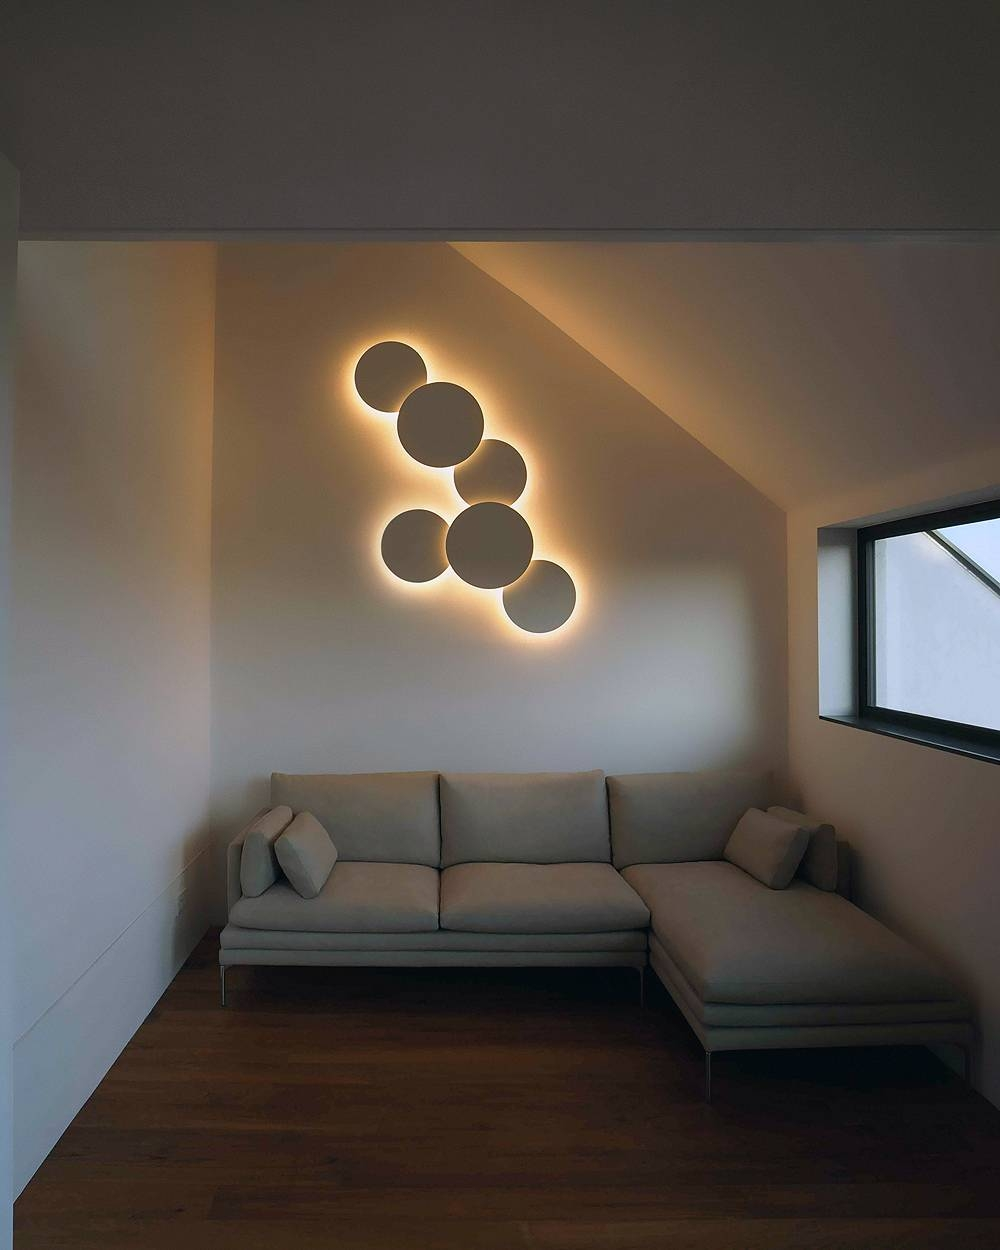 Puck 5468 Wall Art Quadruple Lightvibia | Interior Deluxe Intended For Recent Wall Art Lighting (View 13 of 20)